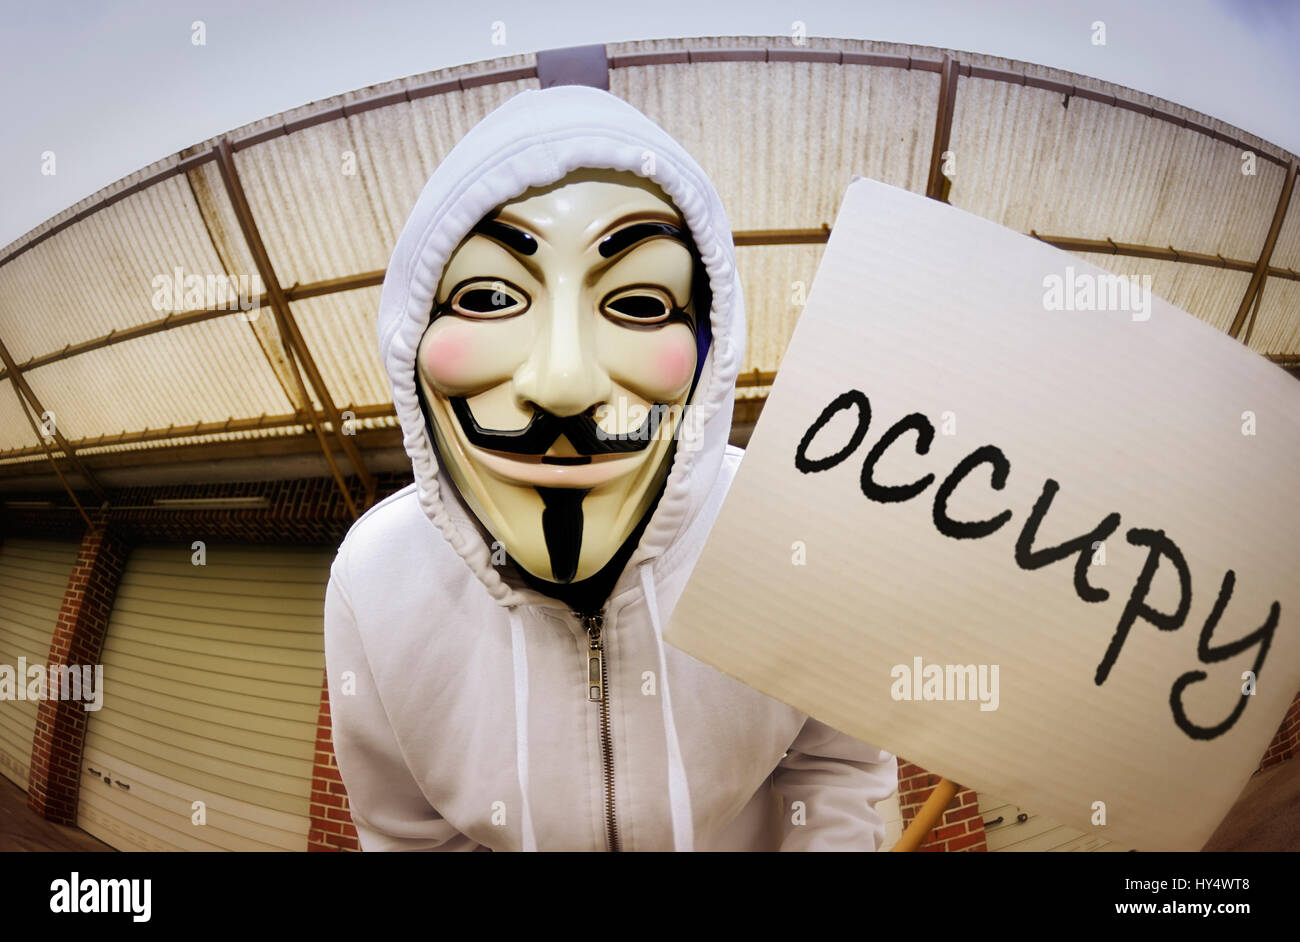 Man with Occupy mask and protest sign, protests against the power of the banks, Mann mit Occupy-Maske und Protest Stock Photo